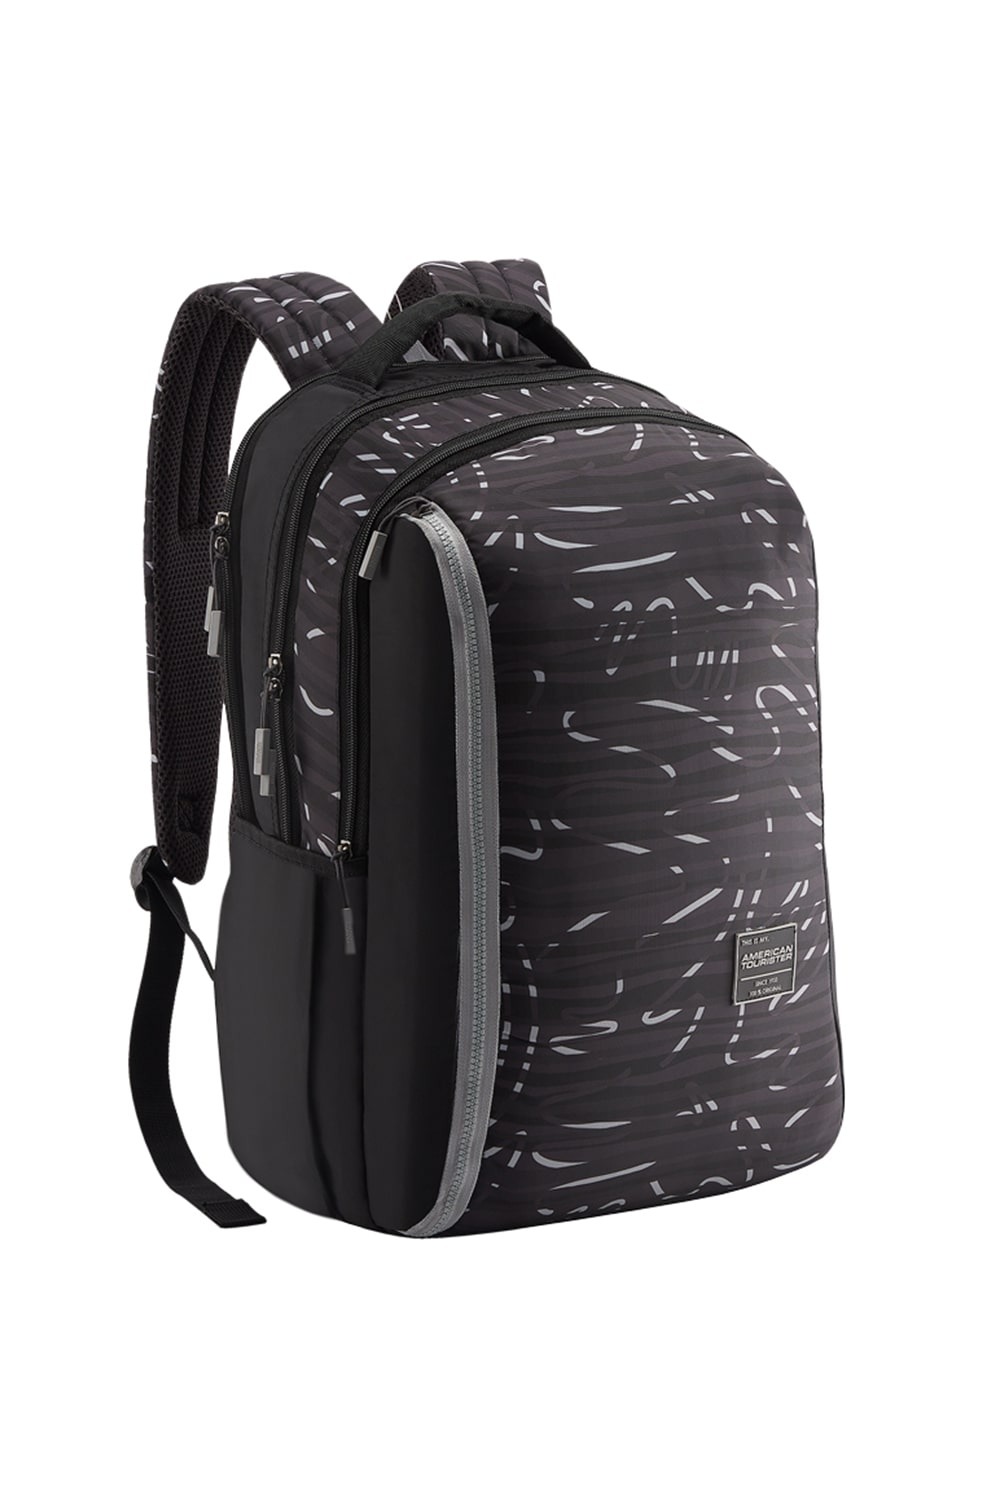 American Tourister Toodle 03 Backpack Travel - Black